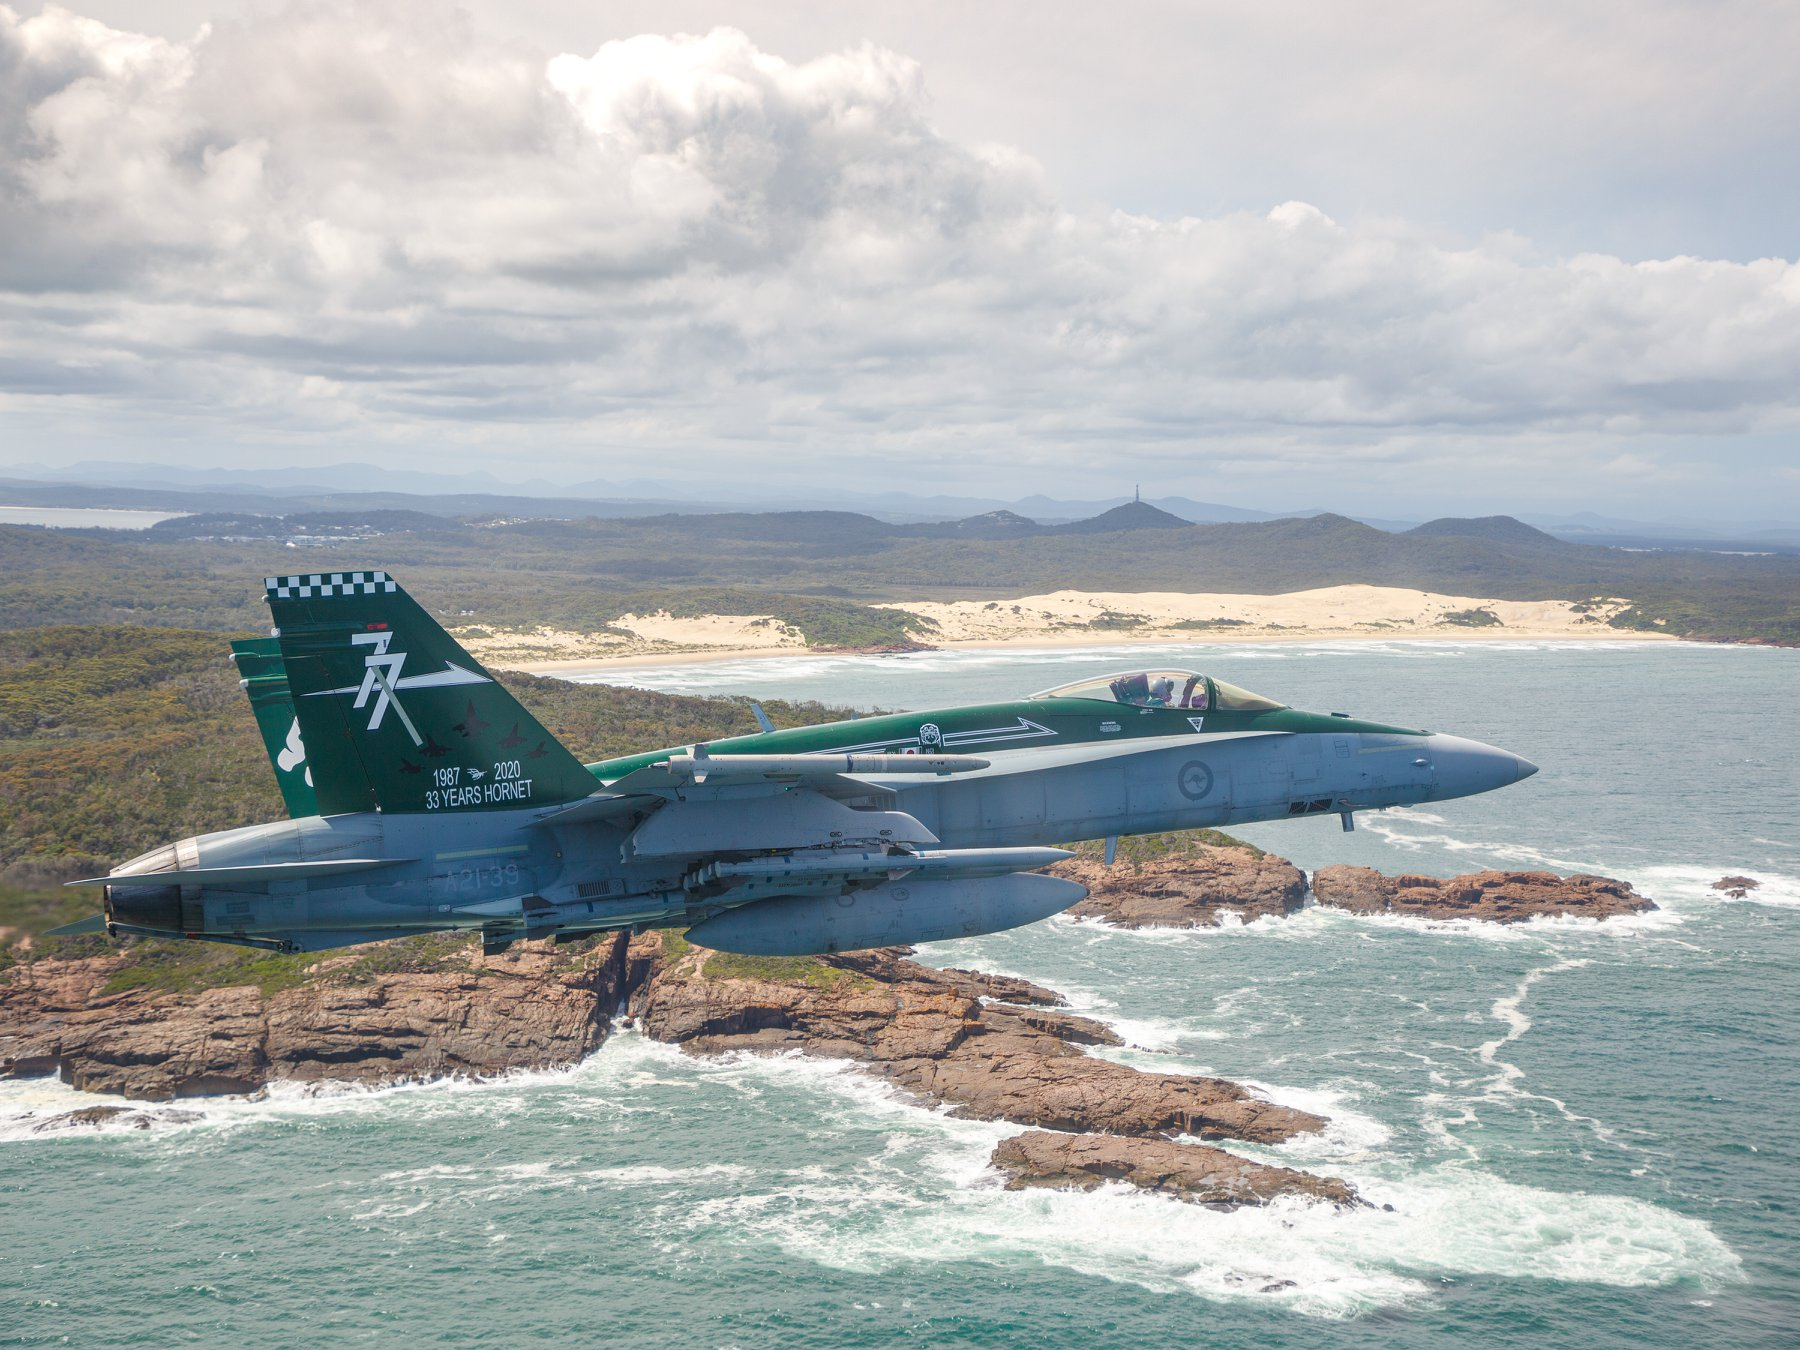 Royal Australian Air Force No. 77 Squadron Farewells F/A-18A/B Hornet